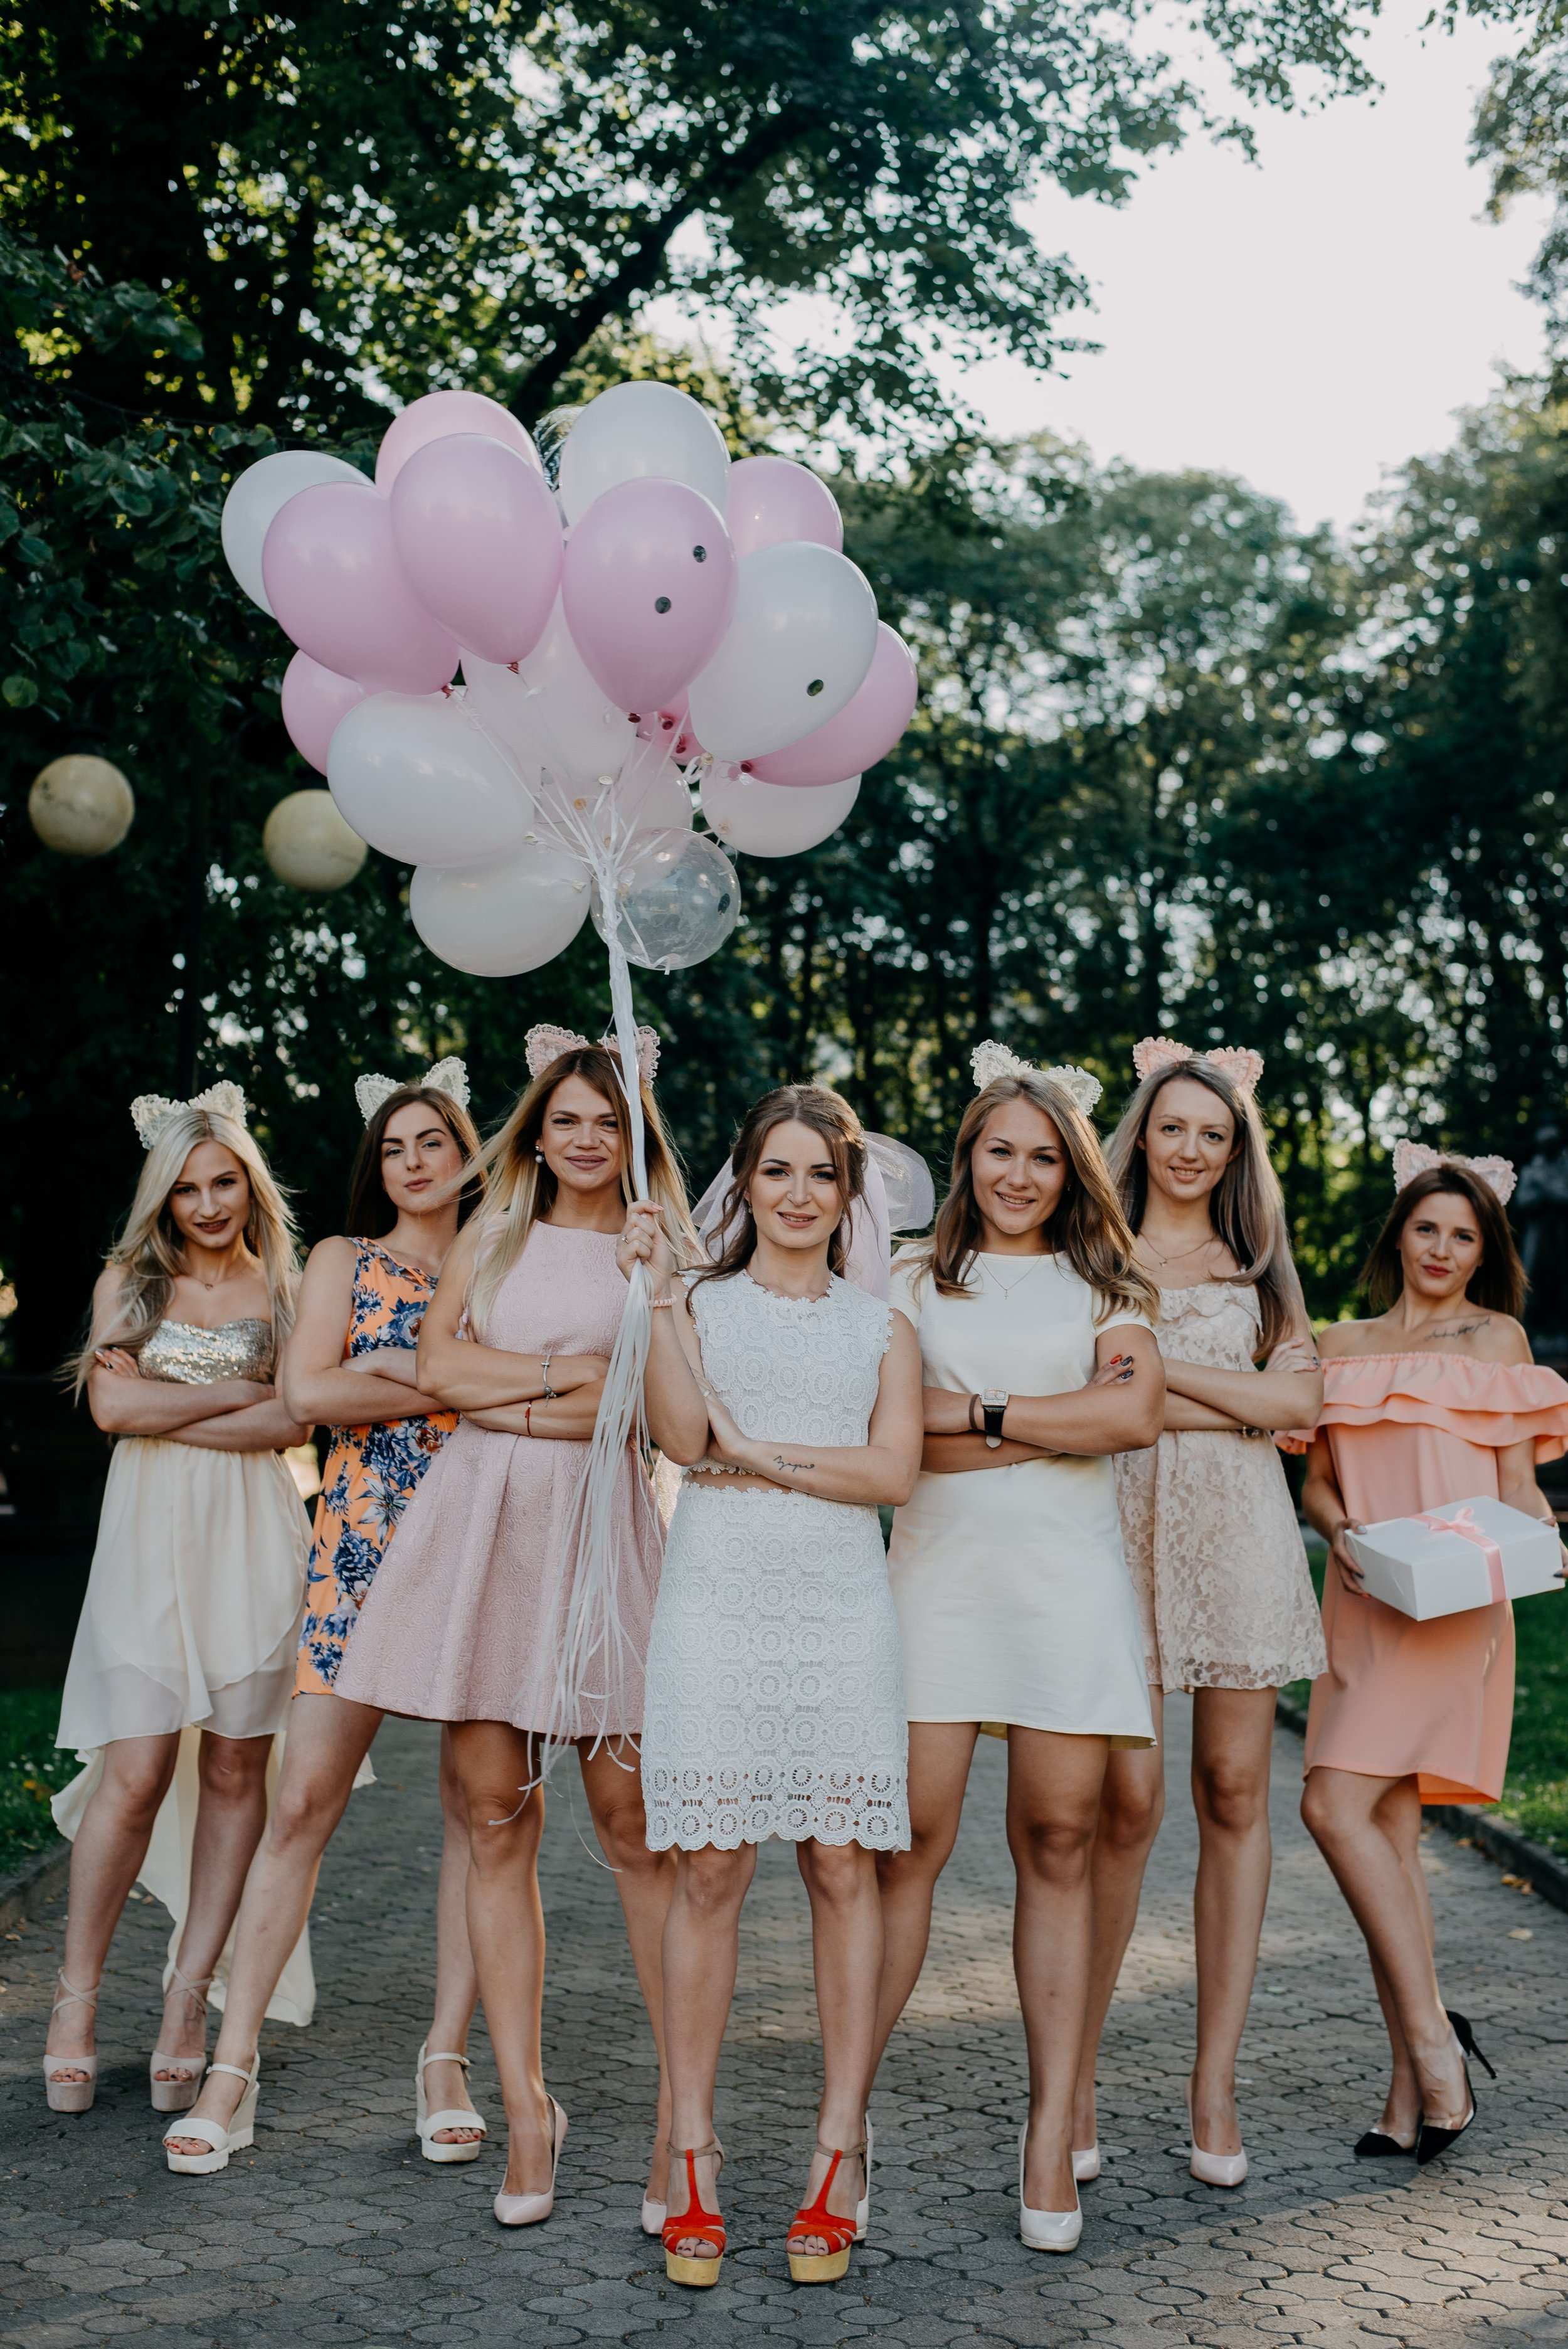 Bridesmaids www.redeventweddingfayres.com/blog